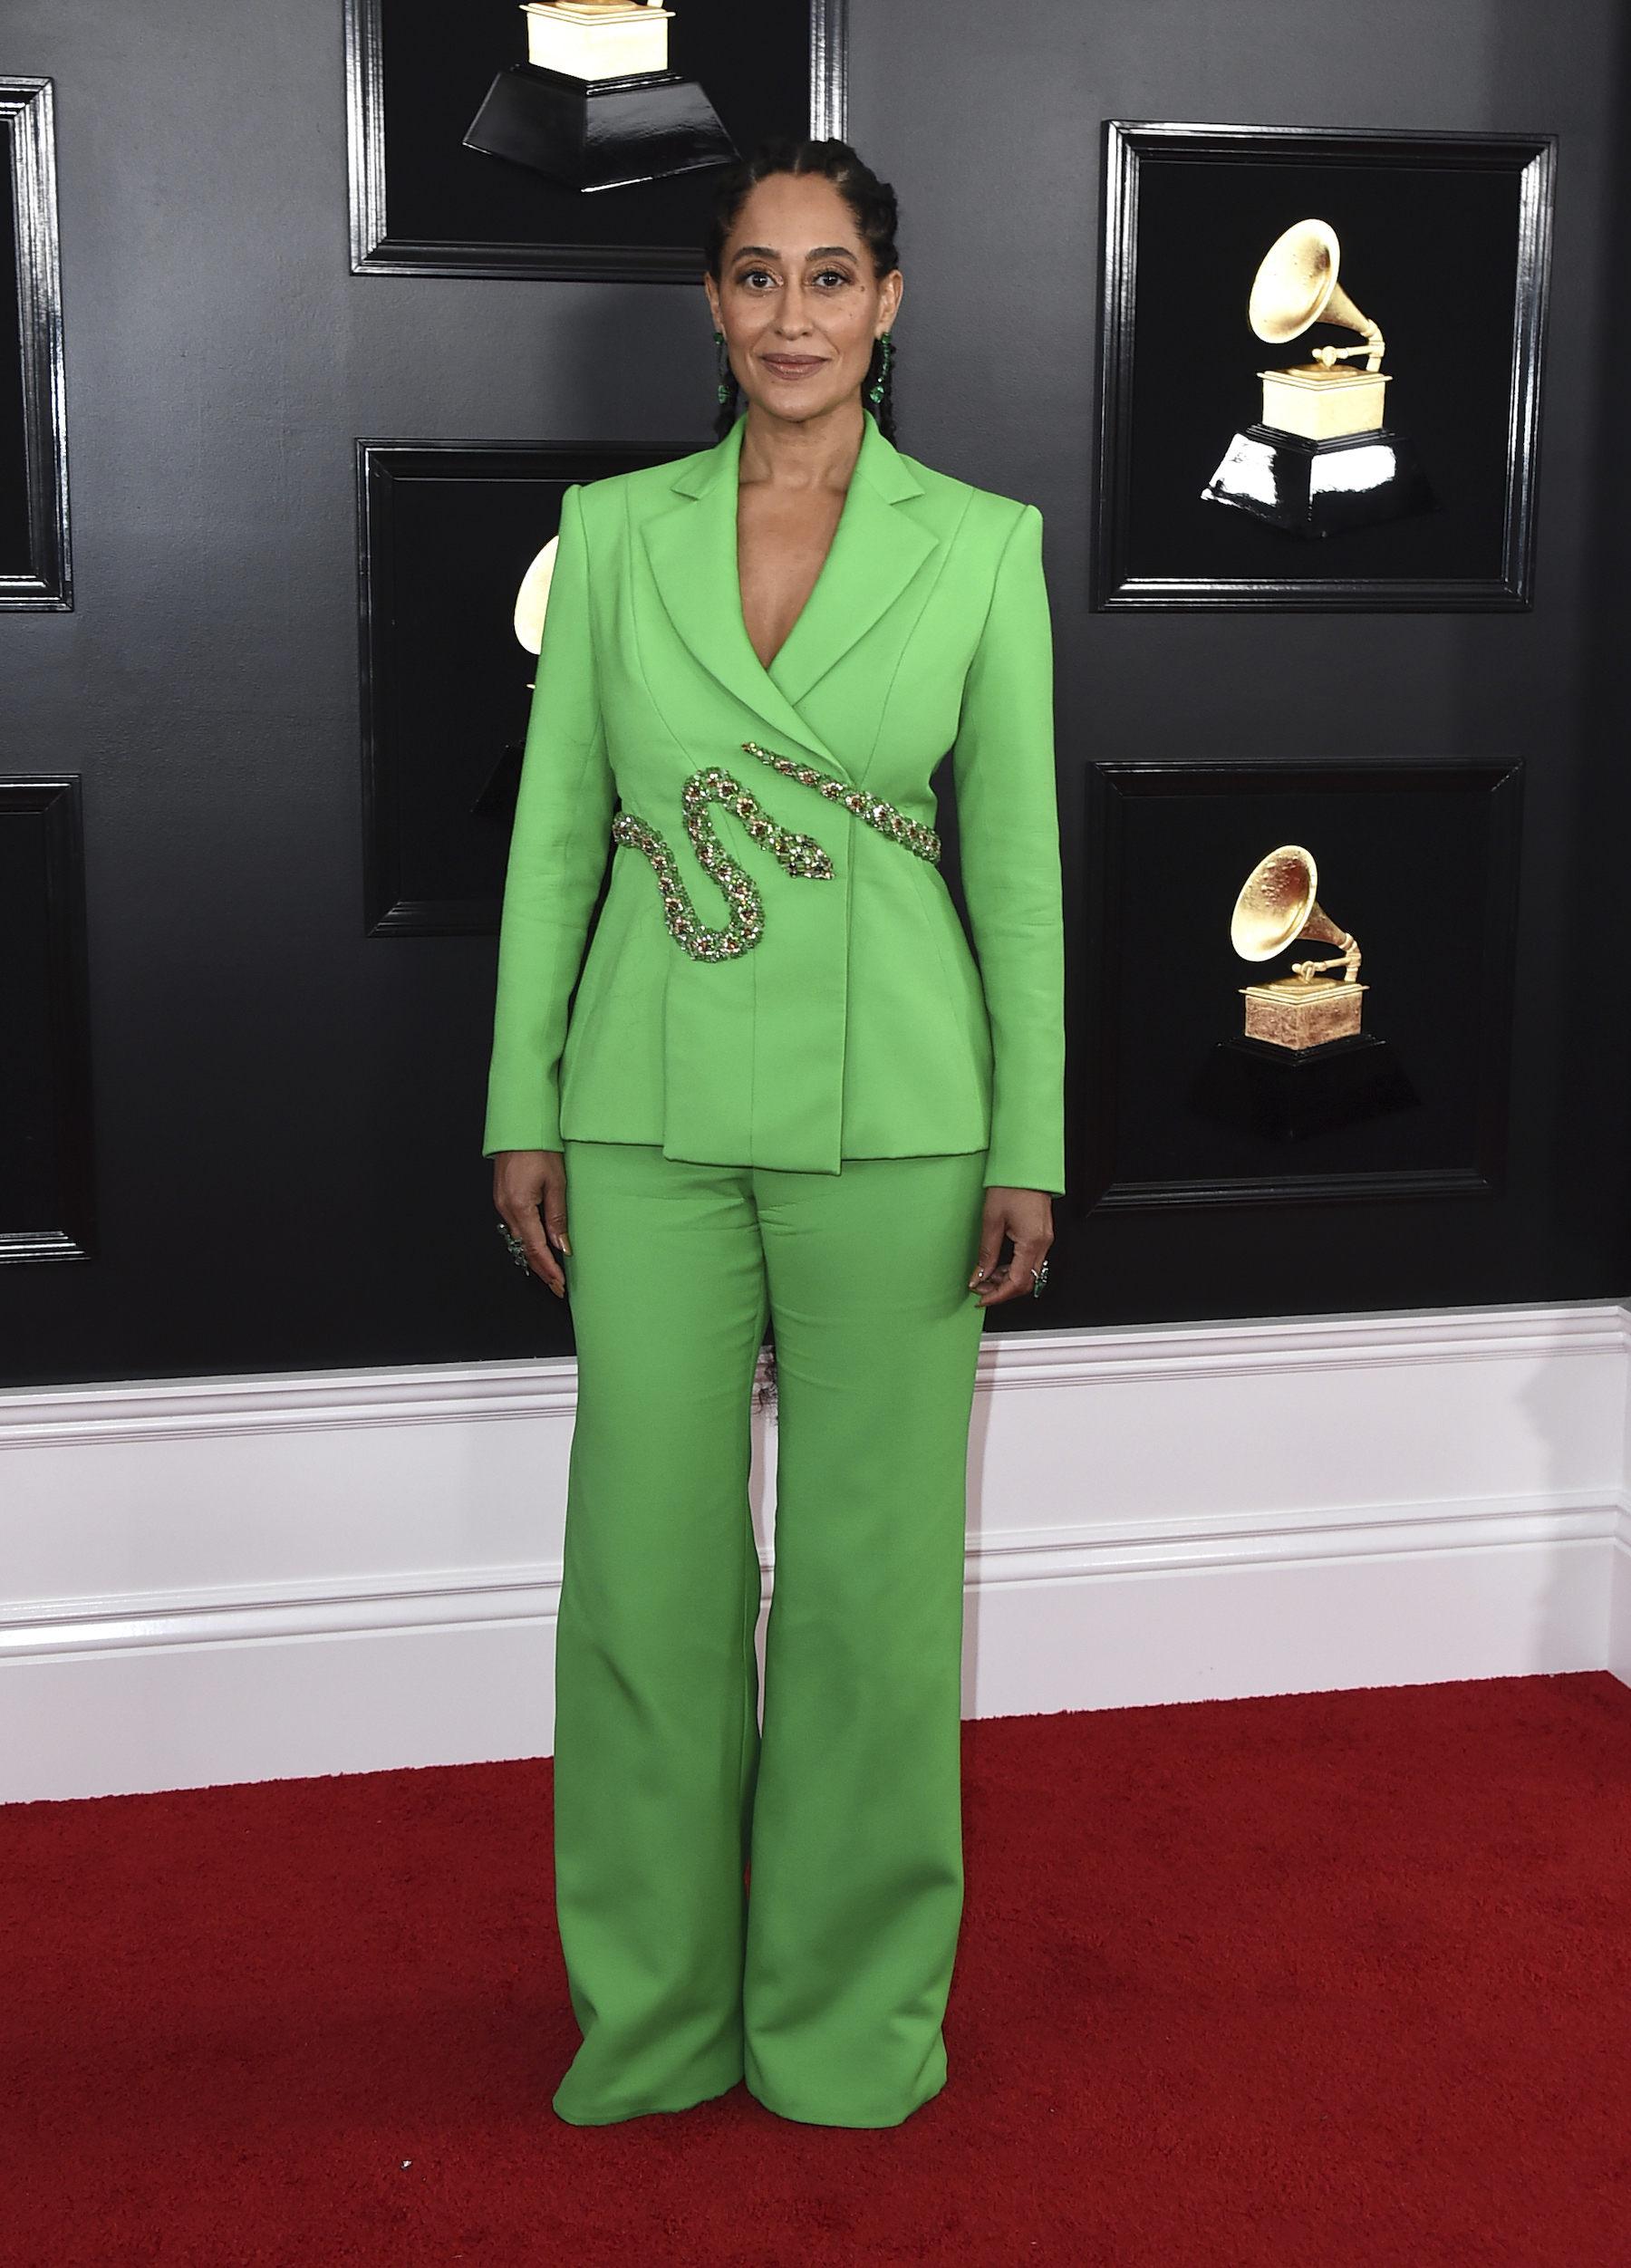 "<div class=""meta image-caption""><div class=""origin-logo origin-image ap""><span>AP</span></div><span class=""caption-text"">Tracee Ellis Ross arrives at the 61st annual Grammy Awards at the Staples Center on Sunday, Feb. 10, 2019, in Los Angeles. (Jordan Strauss/Invision/AP)</span></div>"